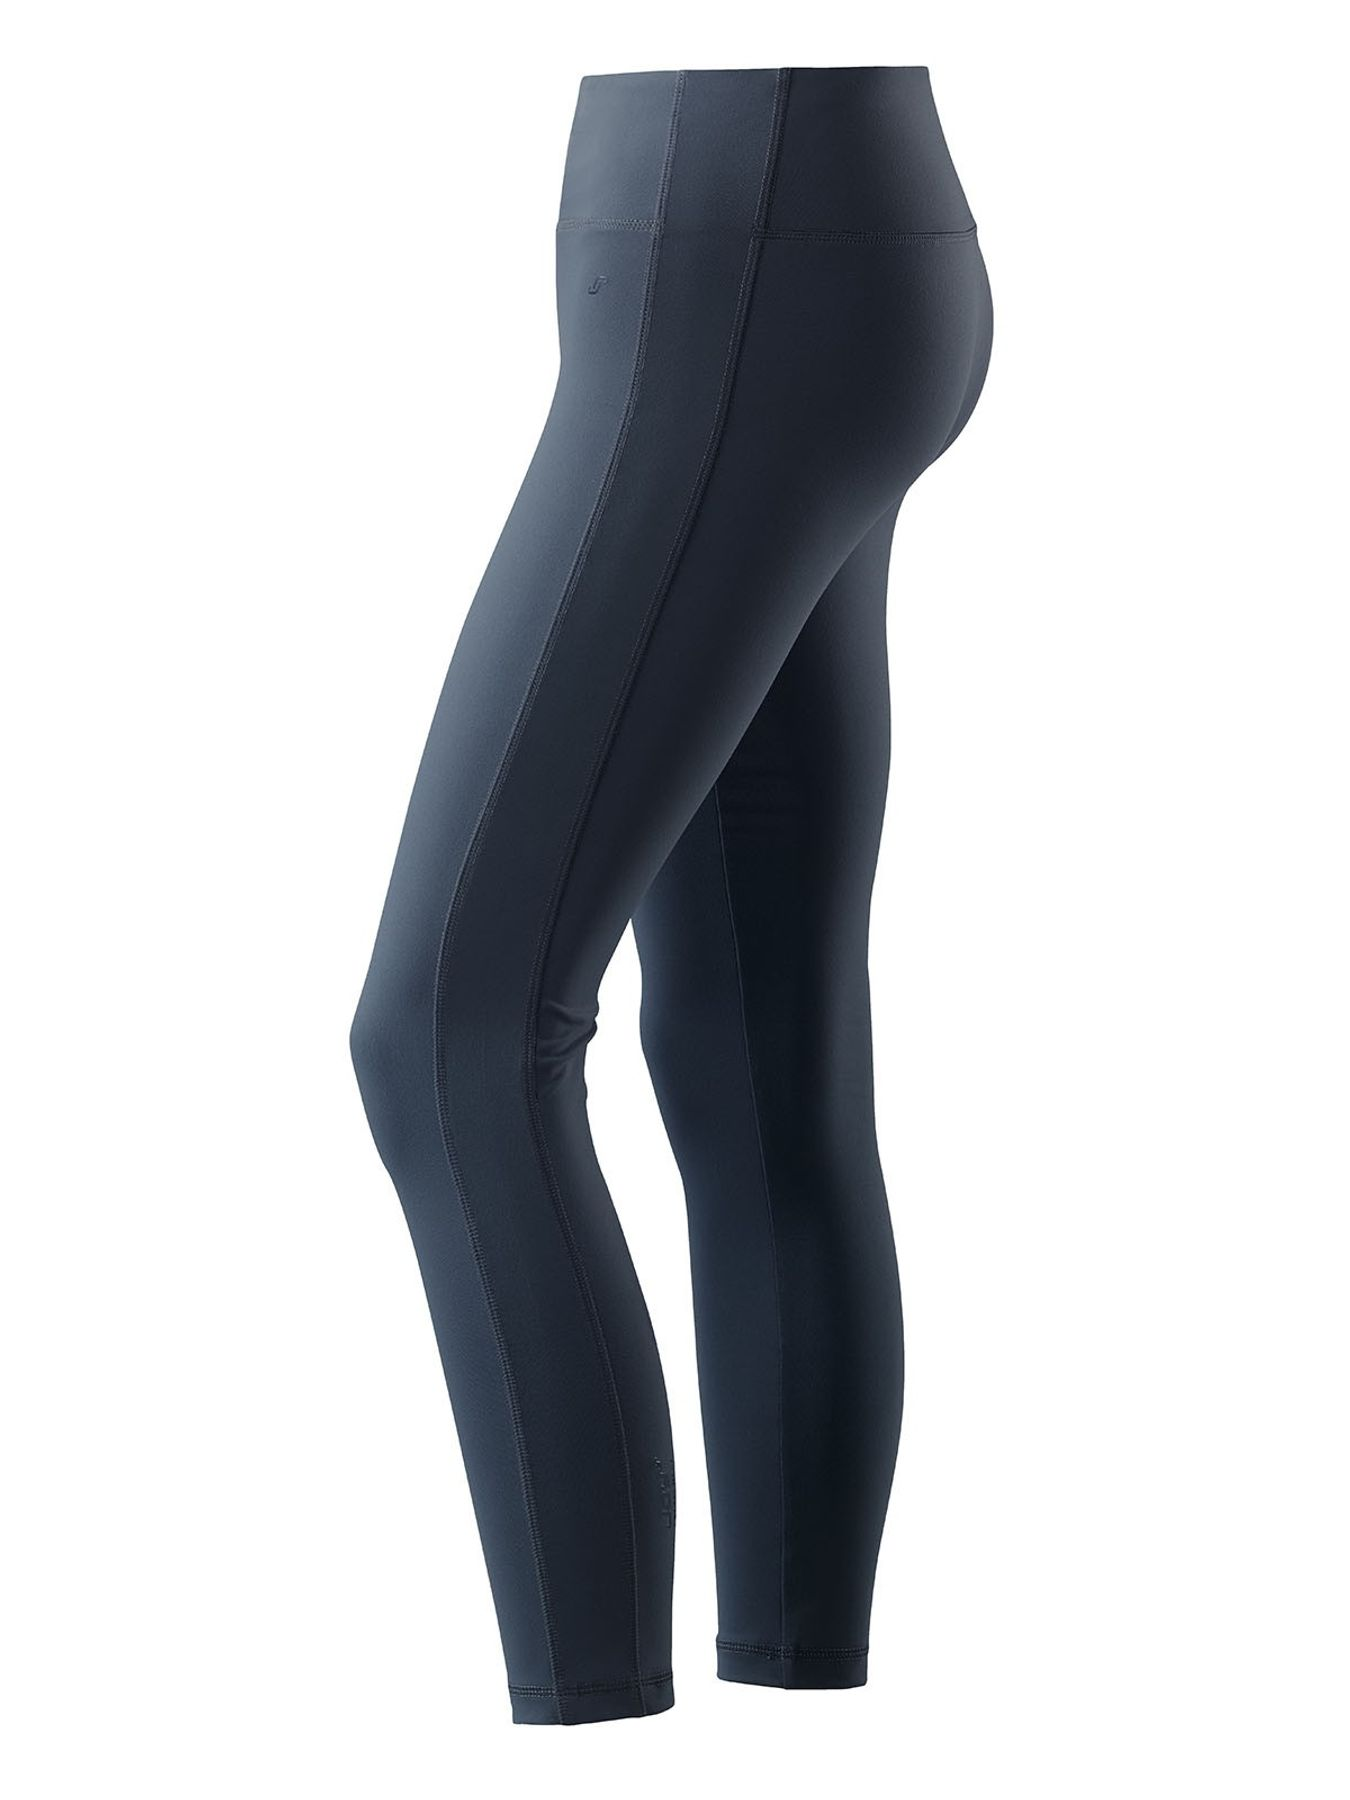 Joy - Bodyfit - Damen Sport Hose mit Shaping-Effekt, Michella (30141) – Bild 4